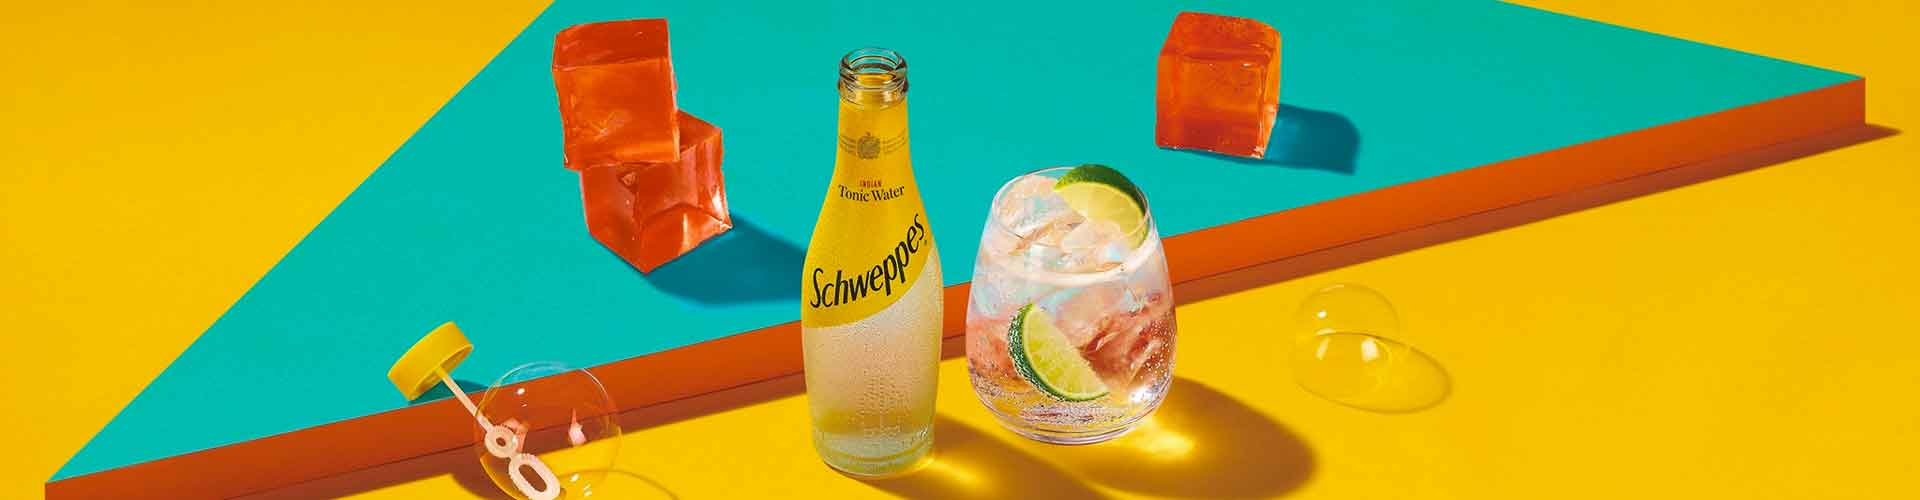 Schweppes gin and tonic